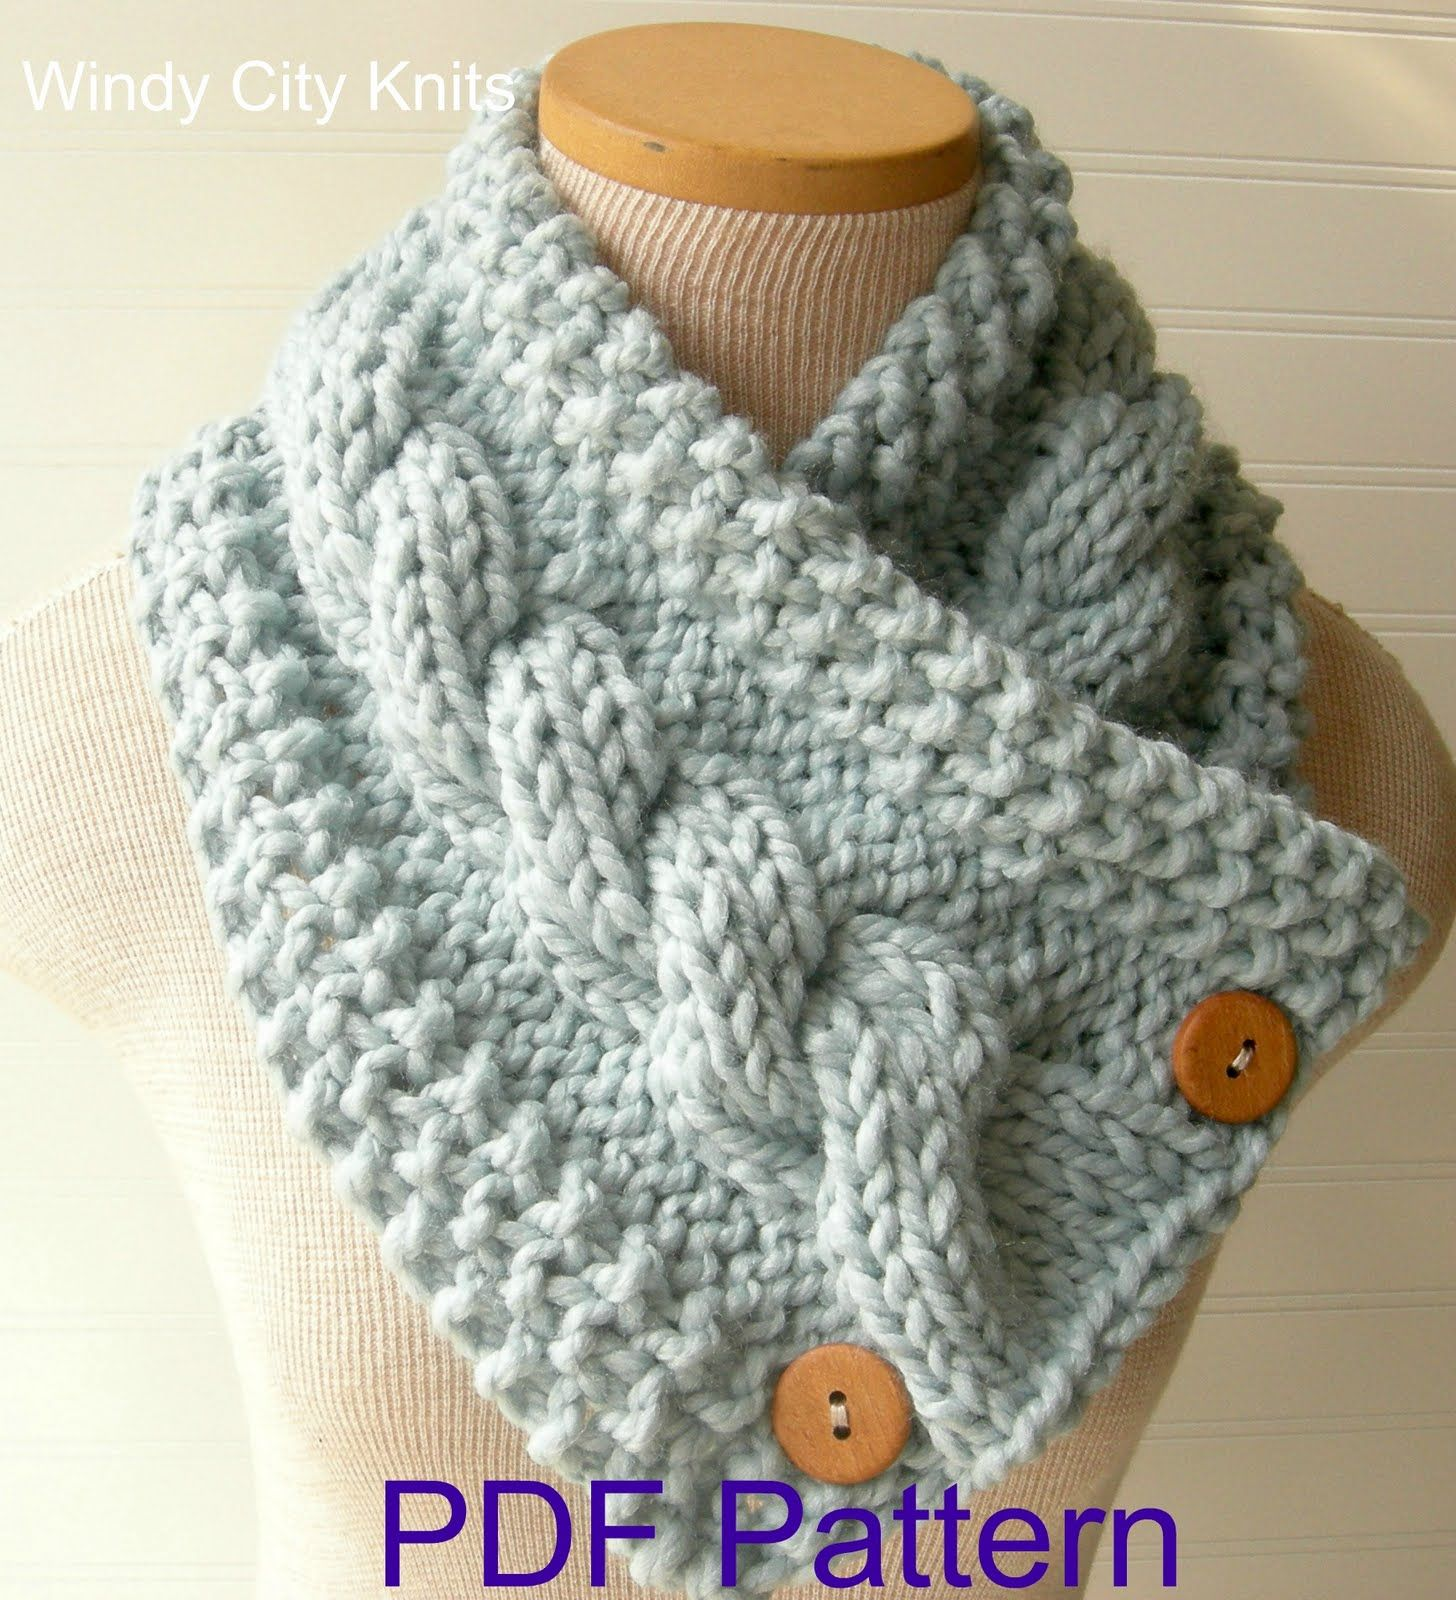 Pin by e kirchner on sapka sl pinterest snood crochet and knit scarf cable cowl glacier light blue by windycityknits on etsy bankloansurffo Image collections